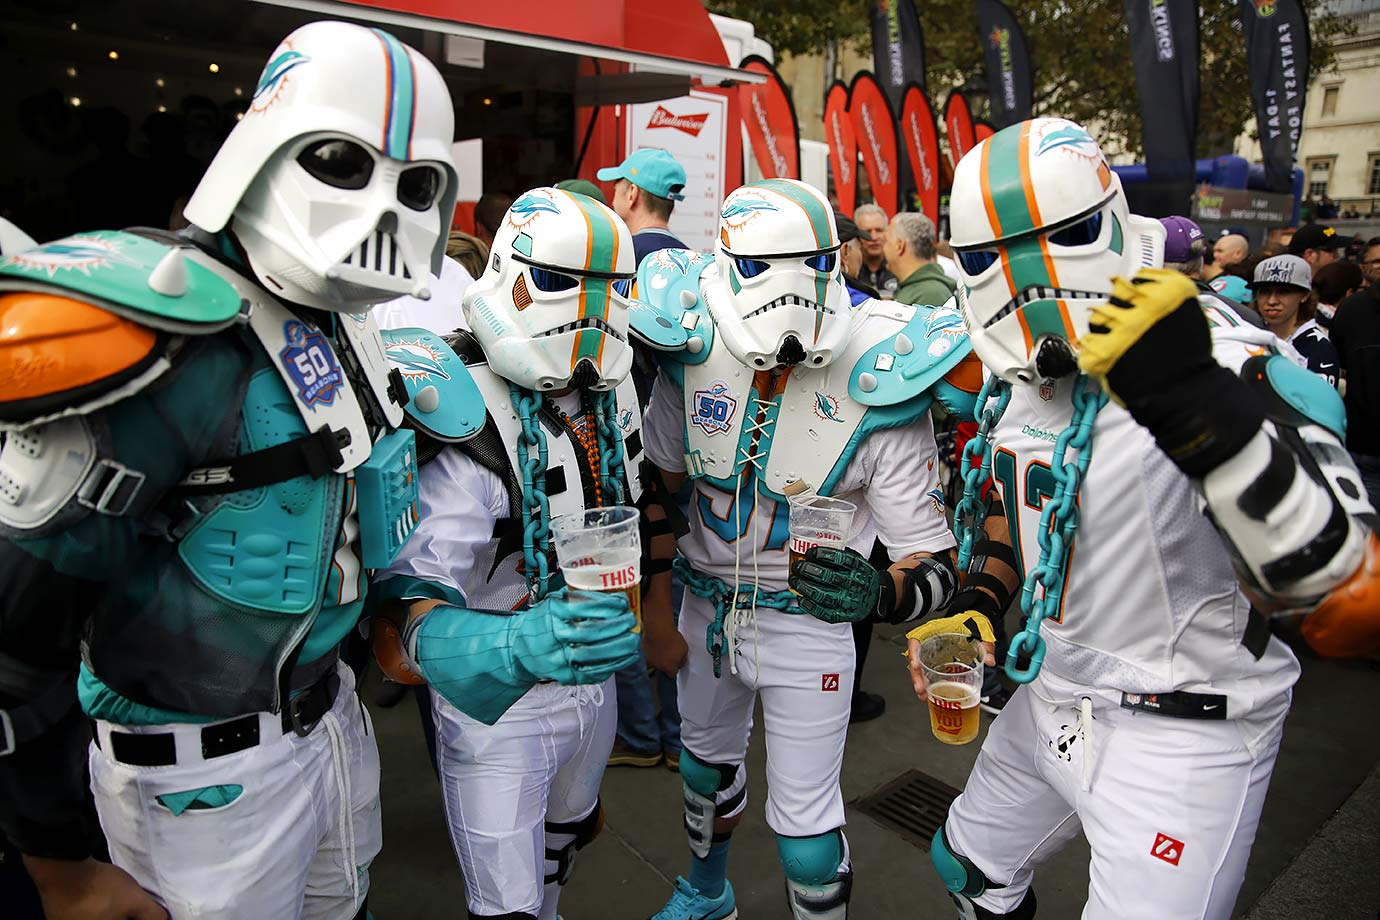 Miami Dolphins fans calling themselves the Fintroopers pose in their stormtrooper costumes during an NFL fan rally on Oct. 3, 2015 in Trafalgar Square prior to the game against the New York Jets at Wembley Stadium in London.